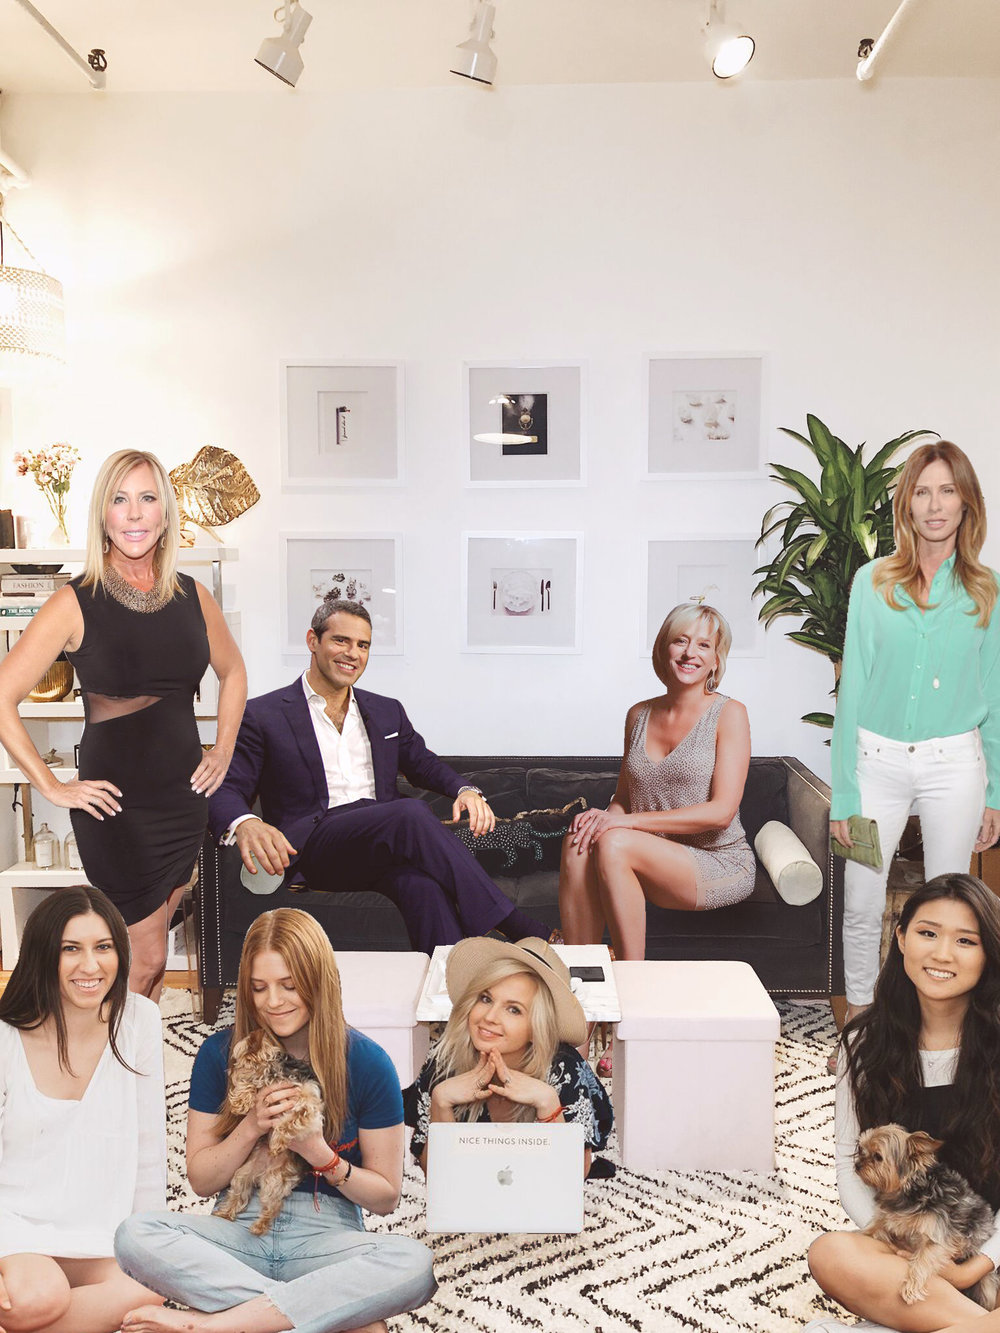 The Real Lessons I Learned From the Real Housewives The Sunday Issue